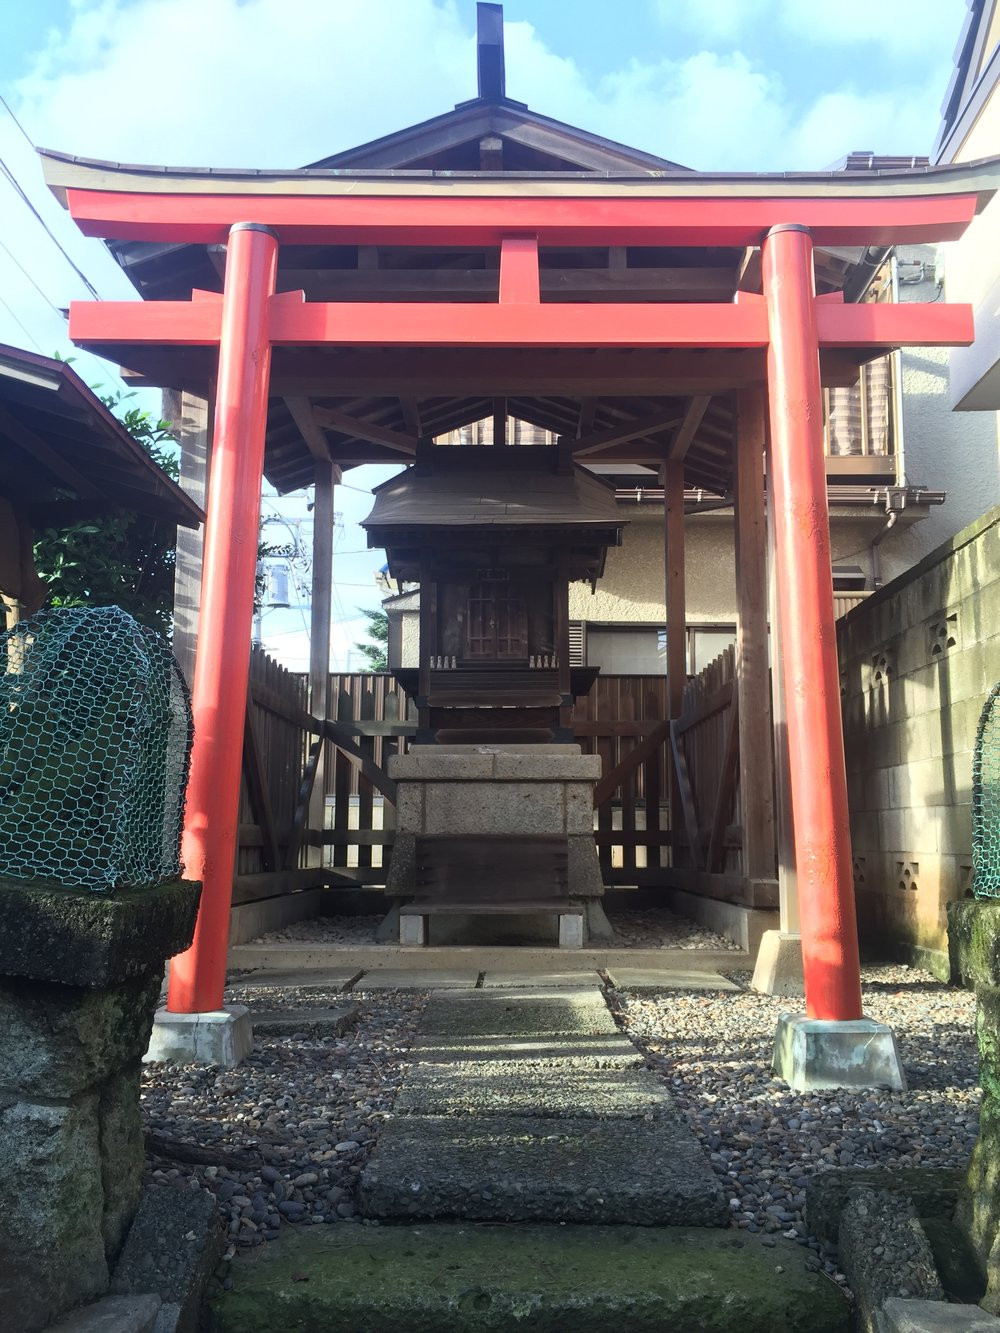 Typical shinto temple scattered around the streets of Japanese cities